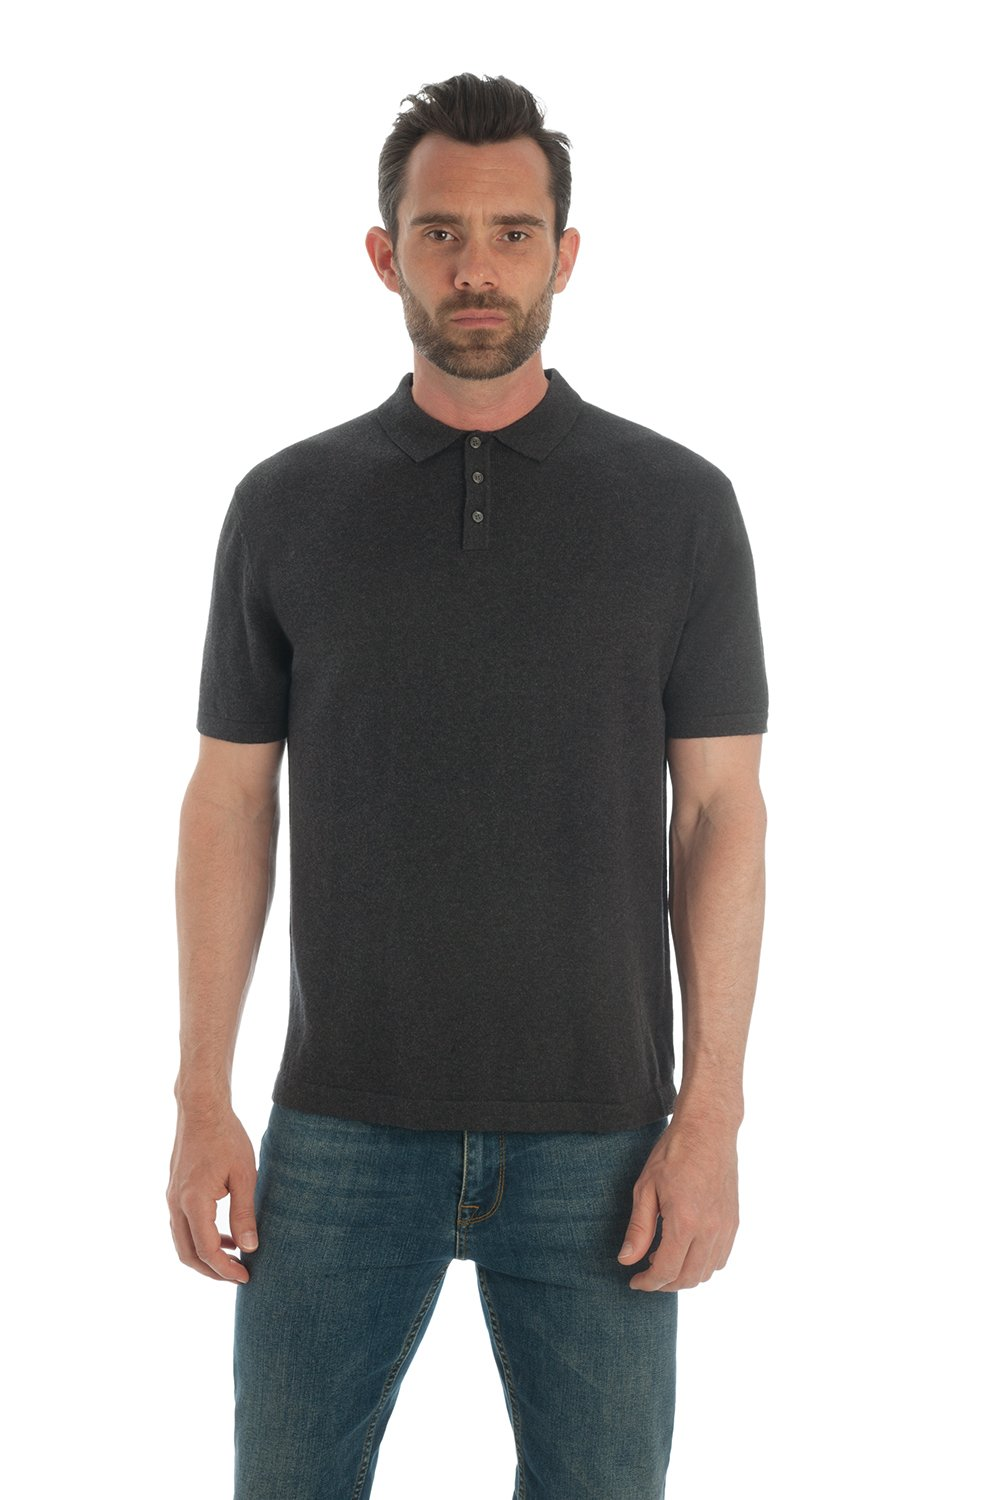 Adorawool Men's Polo Shirt - Short Sleeve- Luxury Cotton & Cashmere - Soft Feel,Charcoal,Large